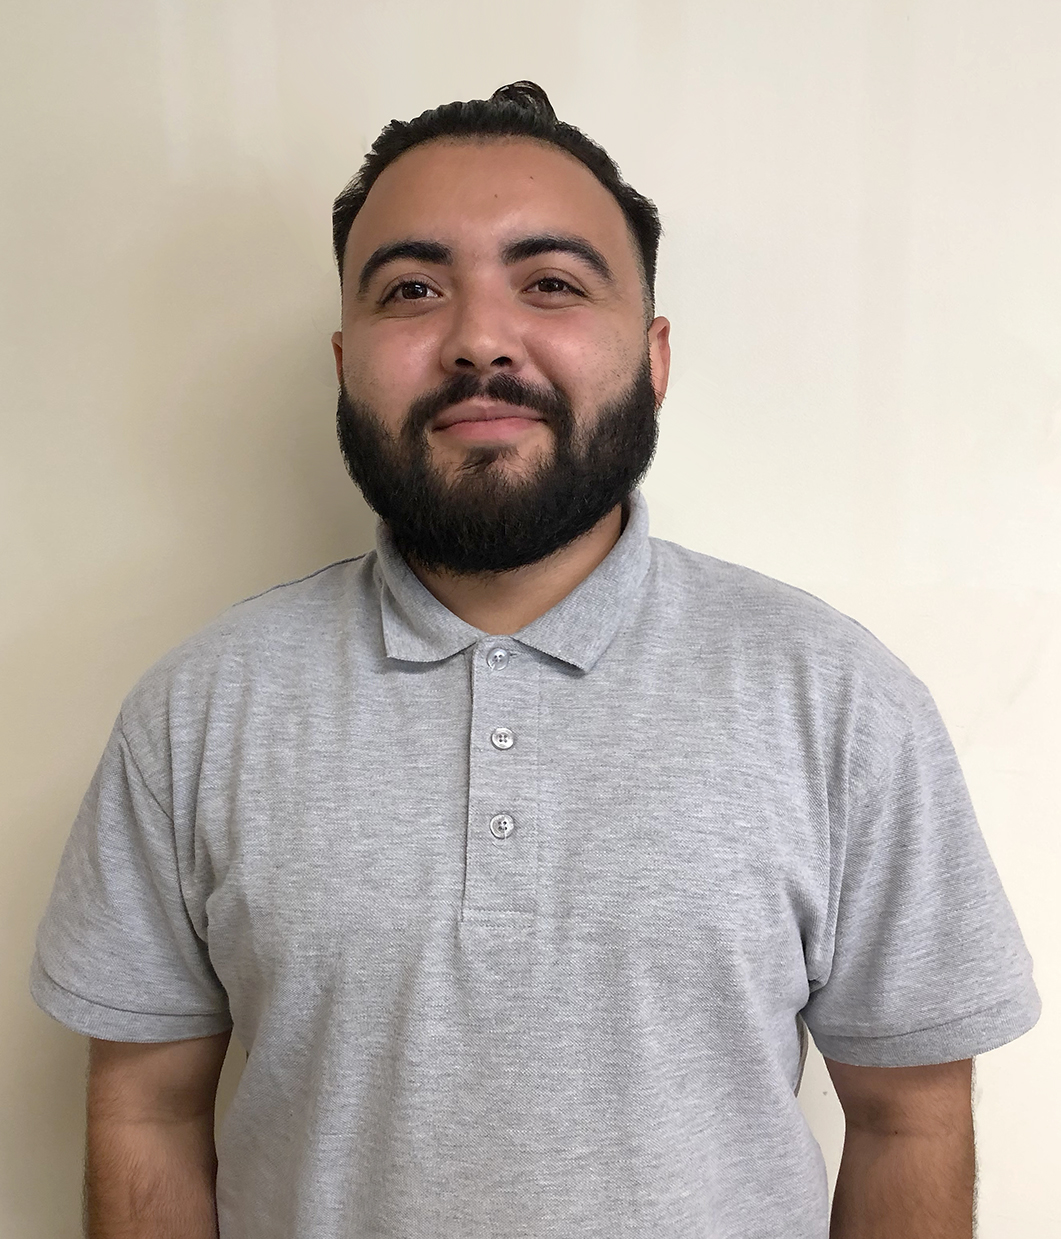 Daniel Fuentes : Support Staff Assistant to the Director of Community Services